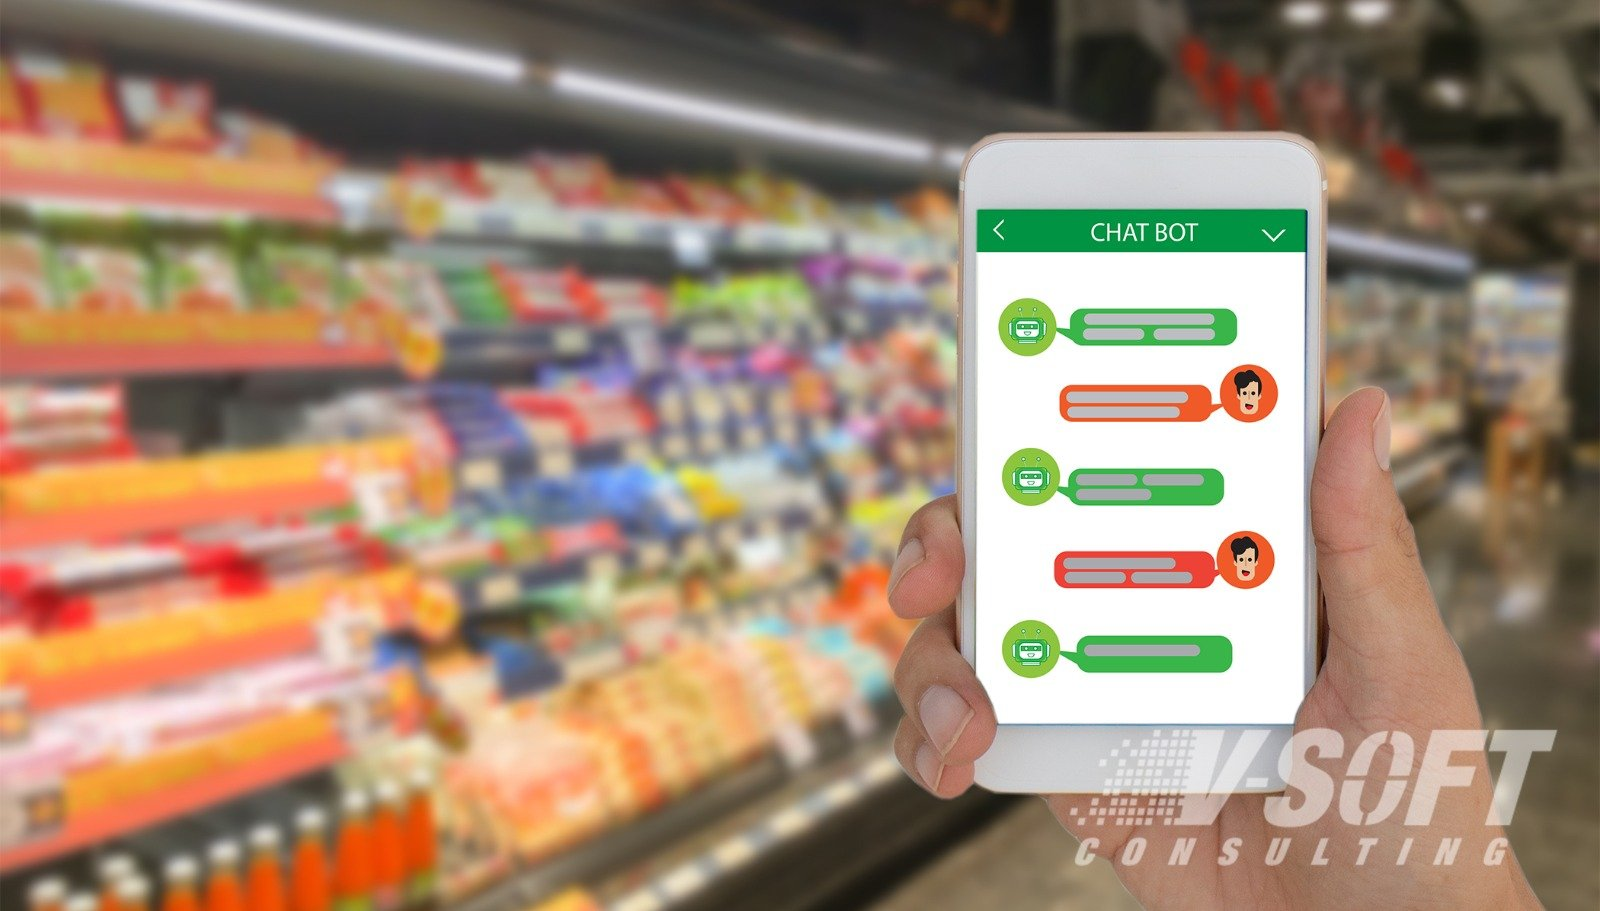 Chatbots can be effective for retailers as they can provide 24/7 support to customers and handle multiple requests at once.